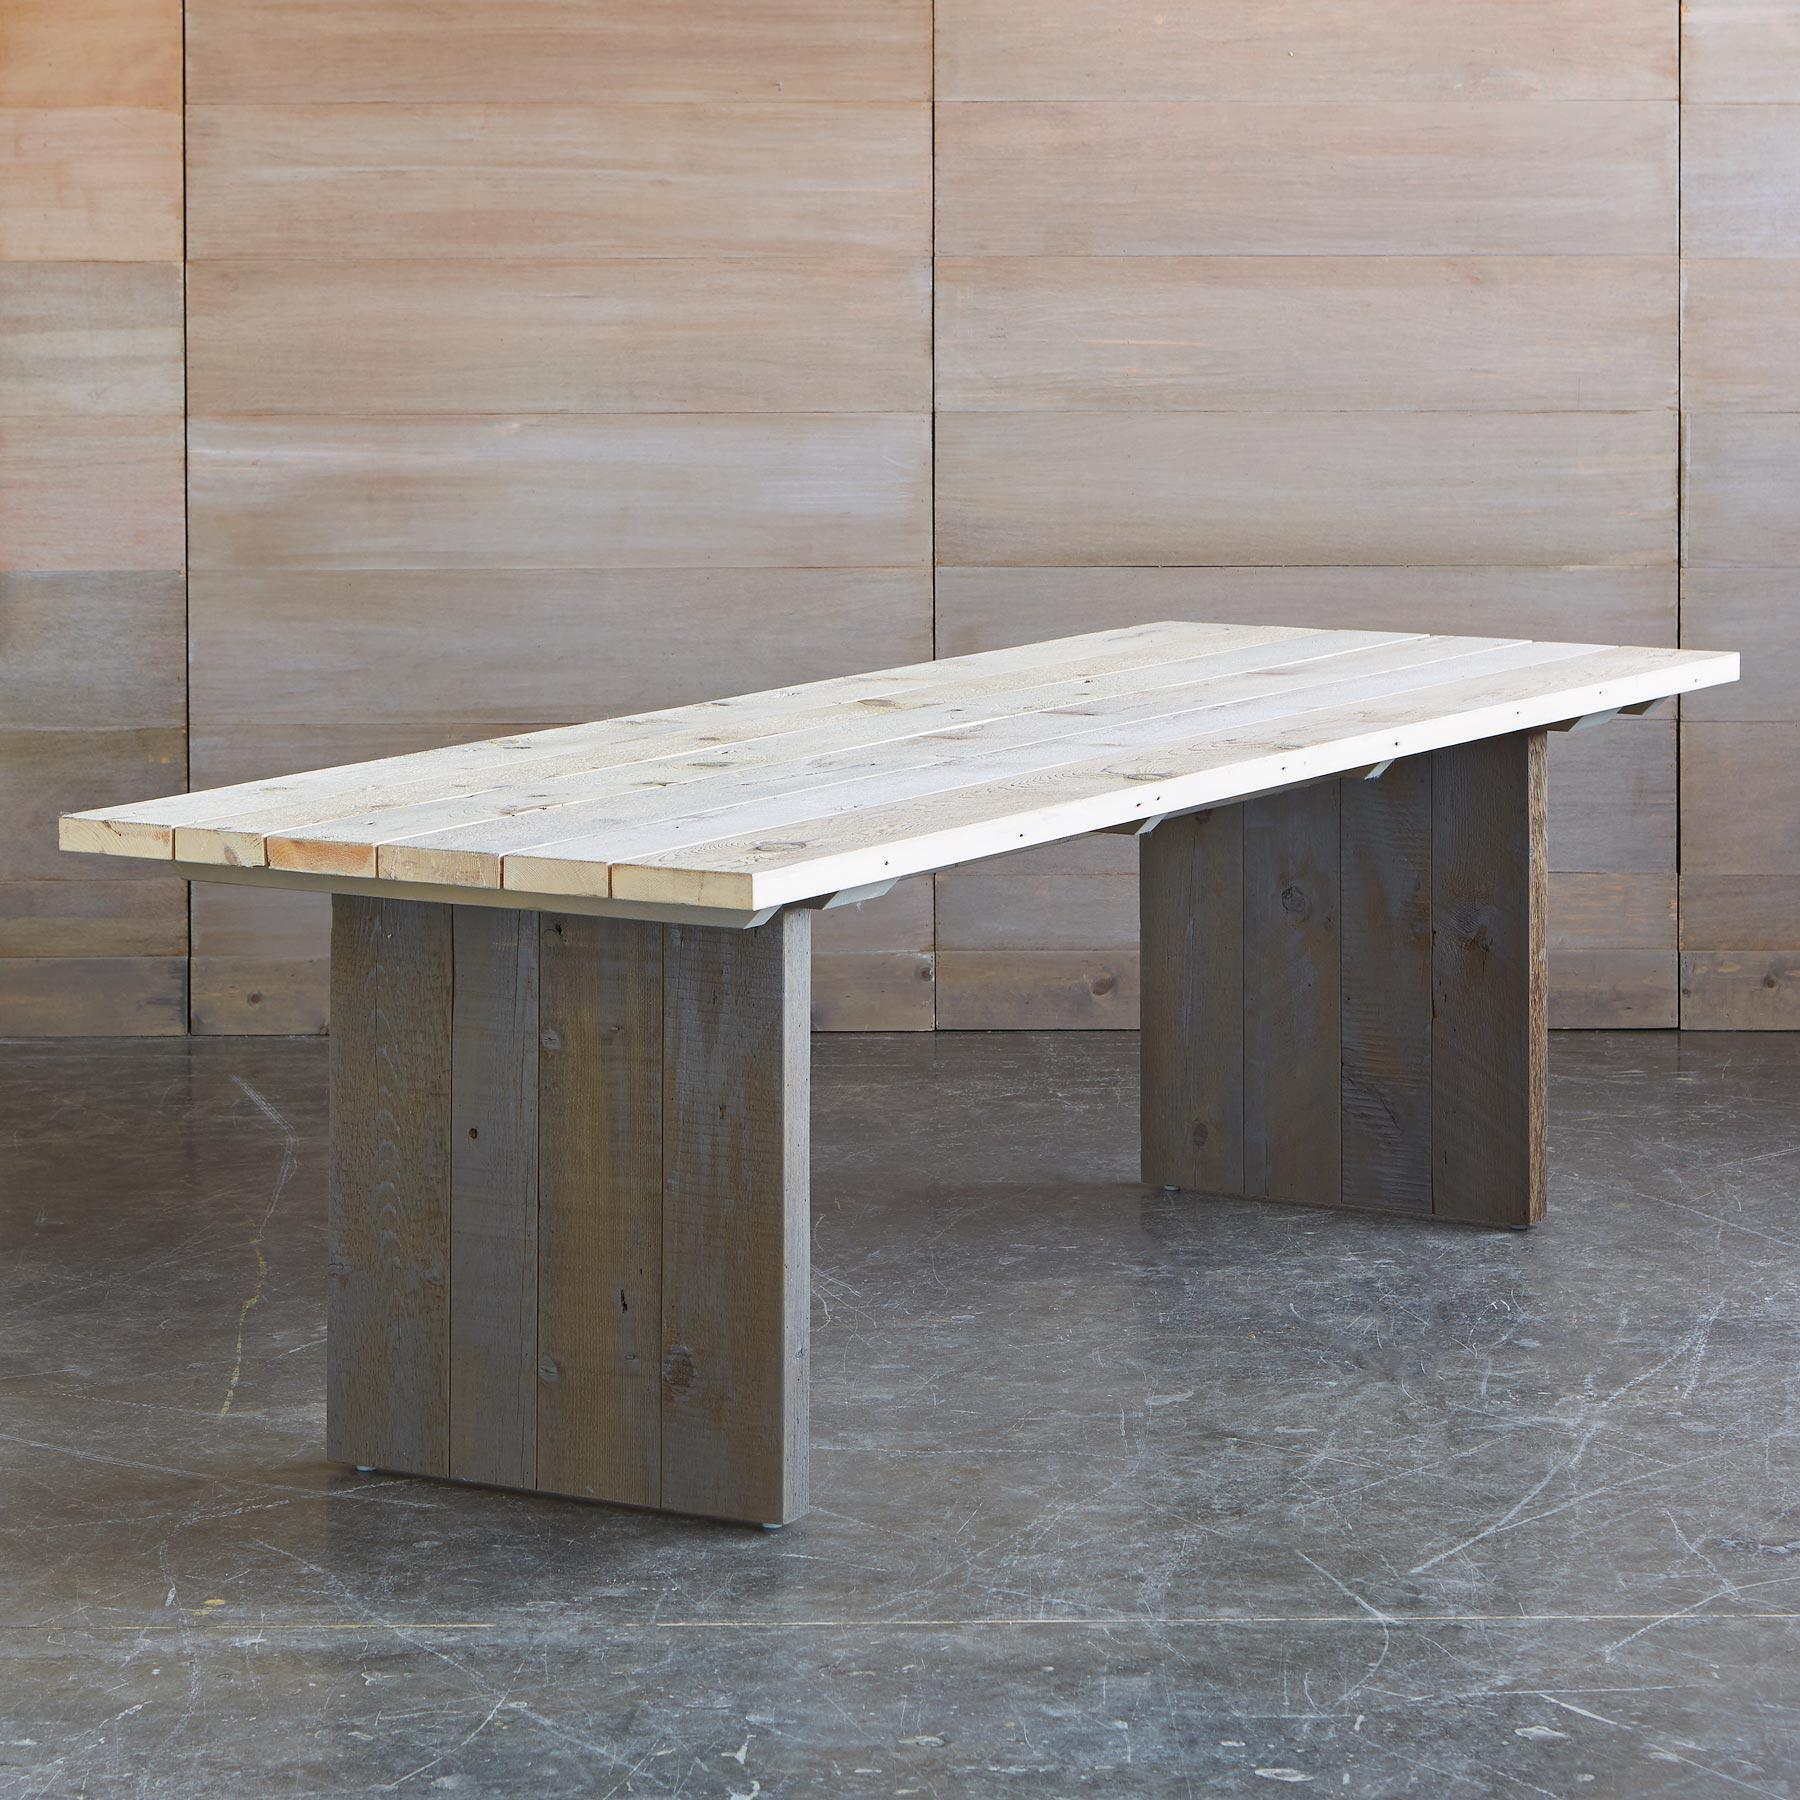 STEWART FALLS OUTDOOR DINING TABLE: View 2